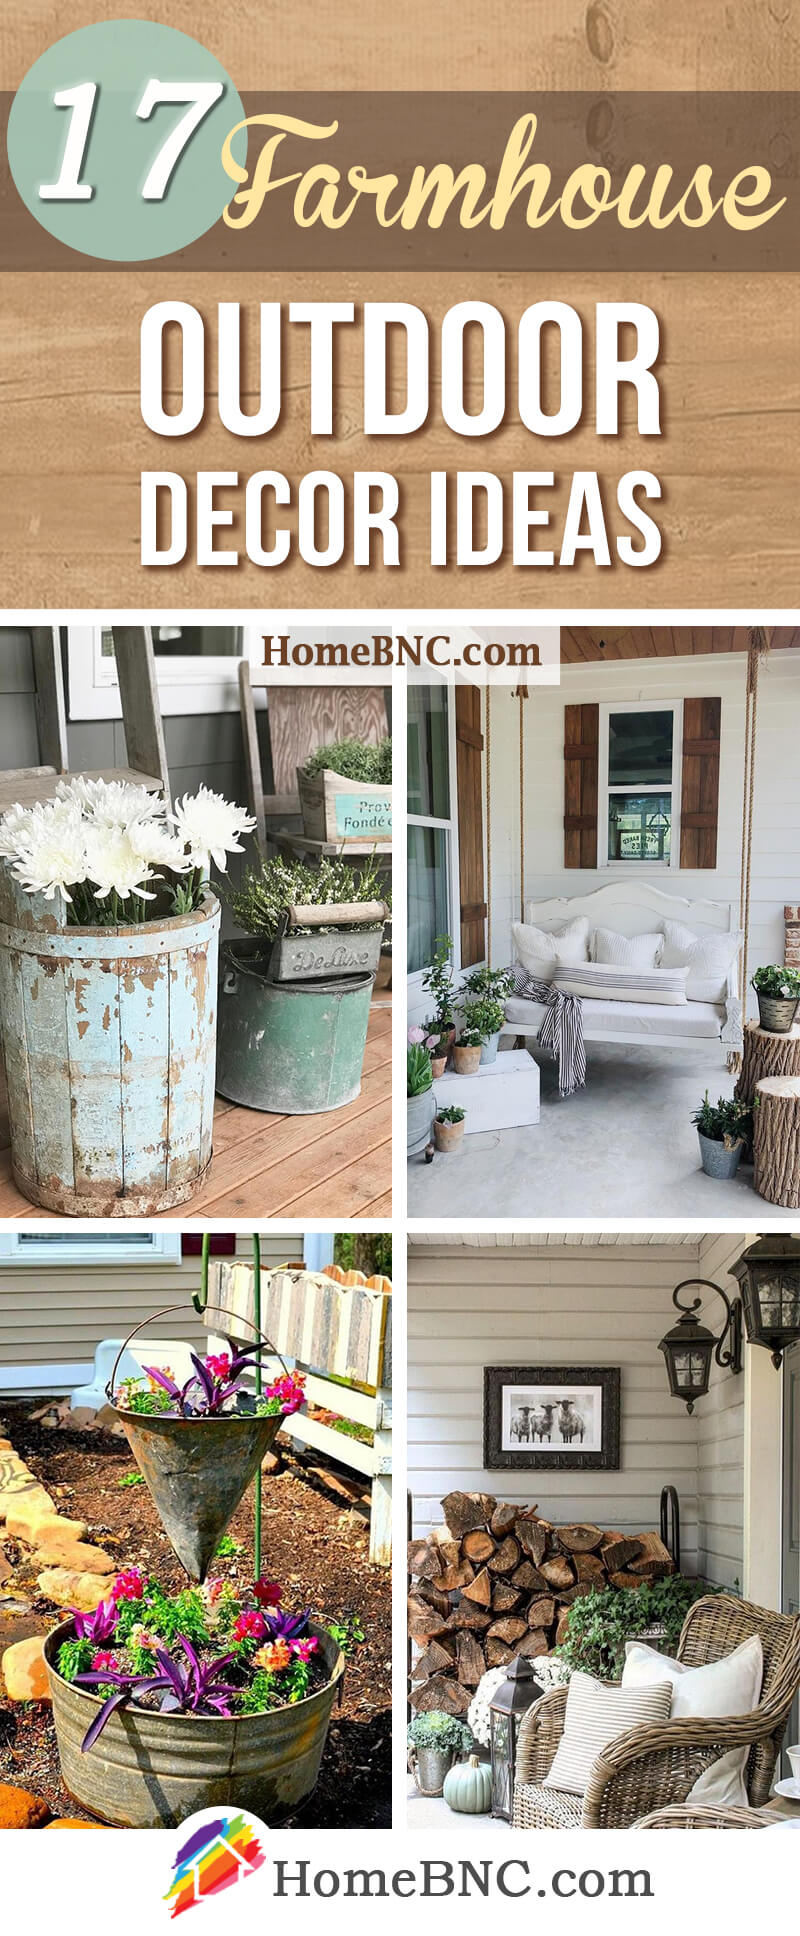 17 Best Farmhouse Outdoor Decor Ideas and Designs for 2020 on Backyard Patio Decorating Ideas id=92094